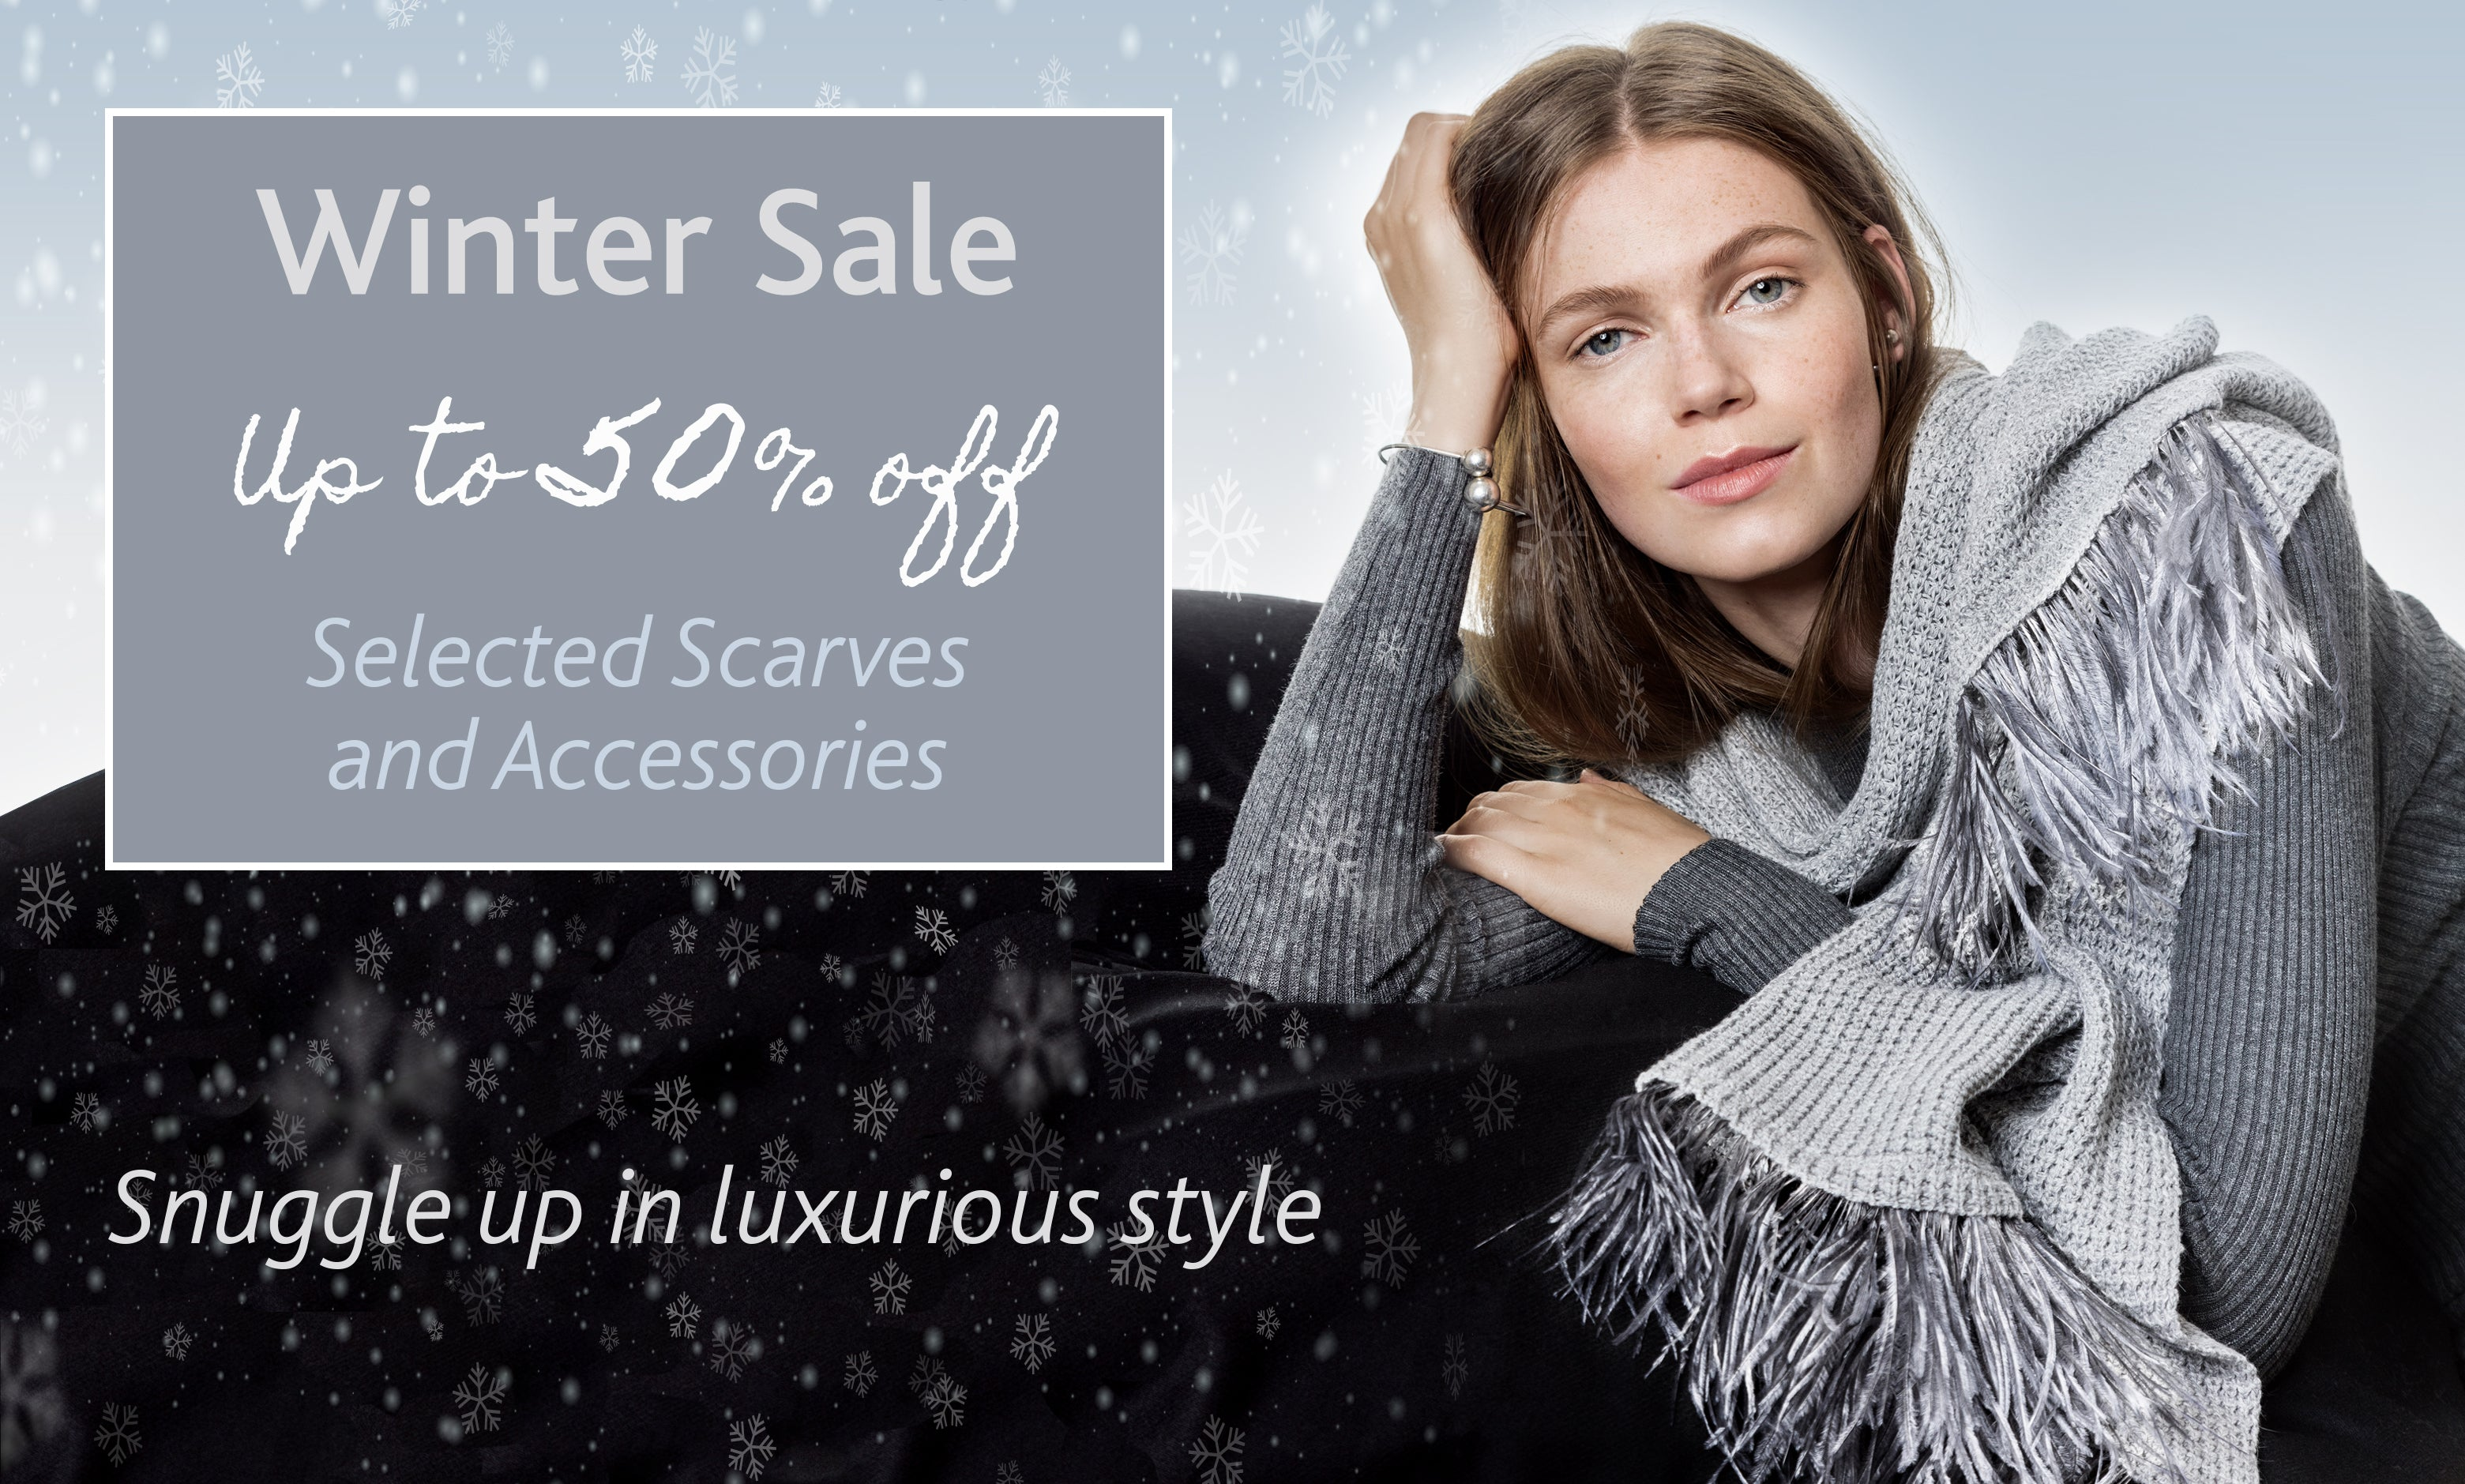 Winter Sale Scarves and Accessories